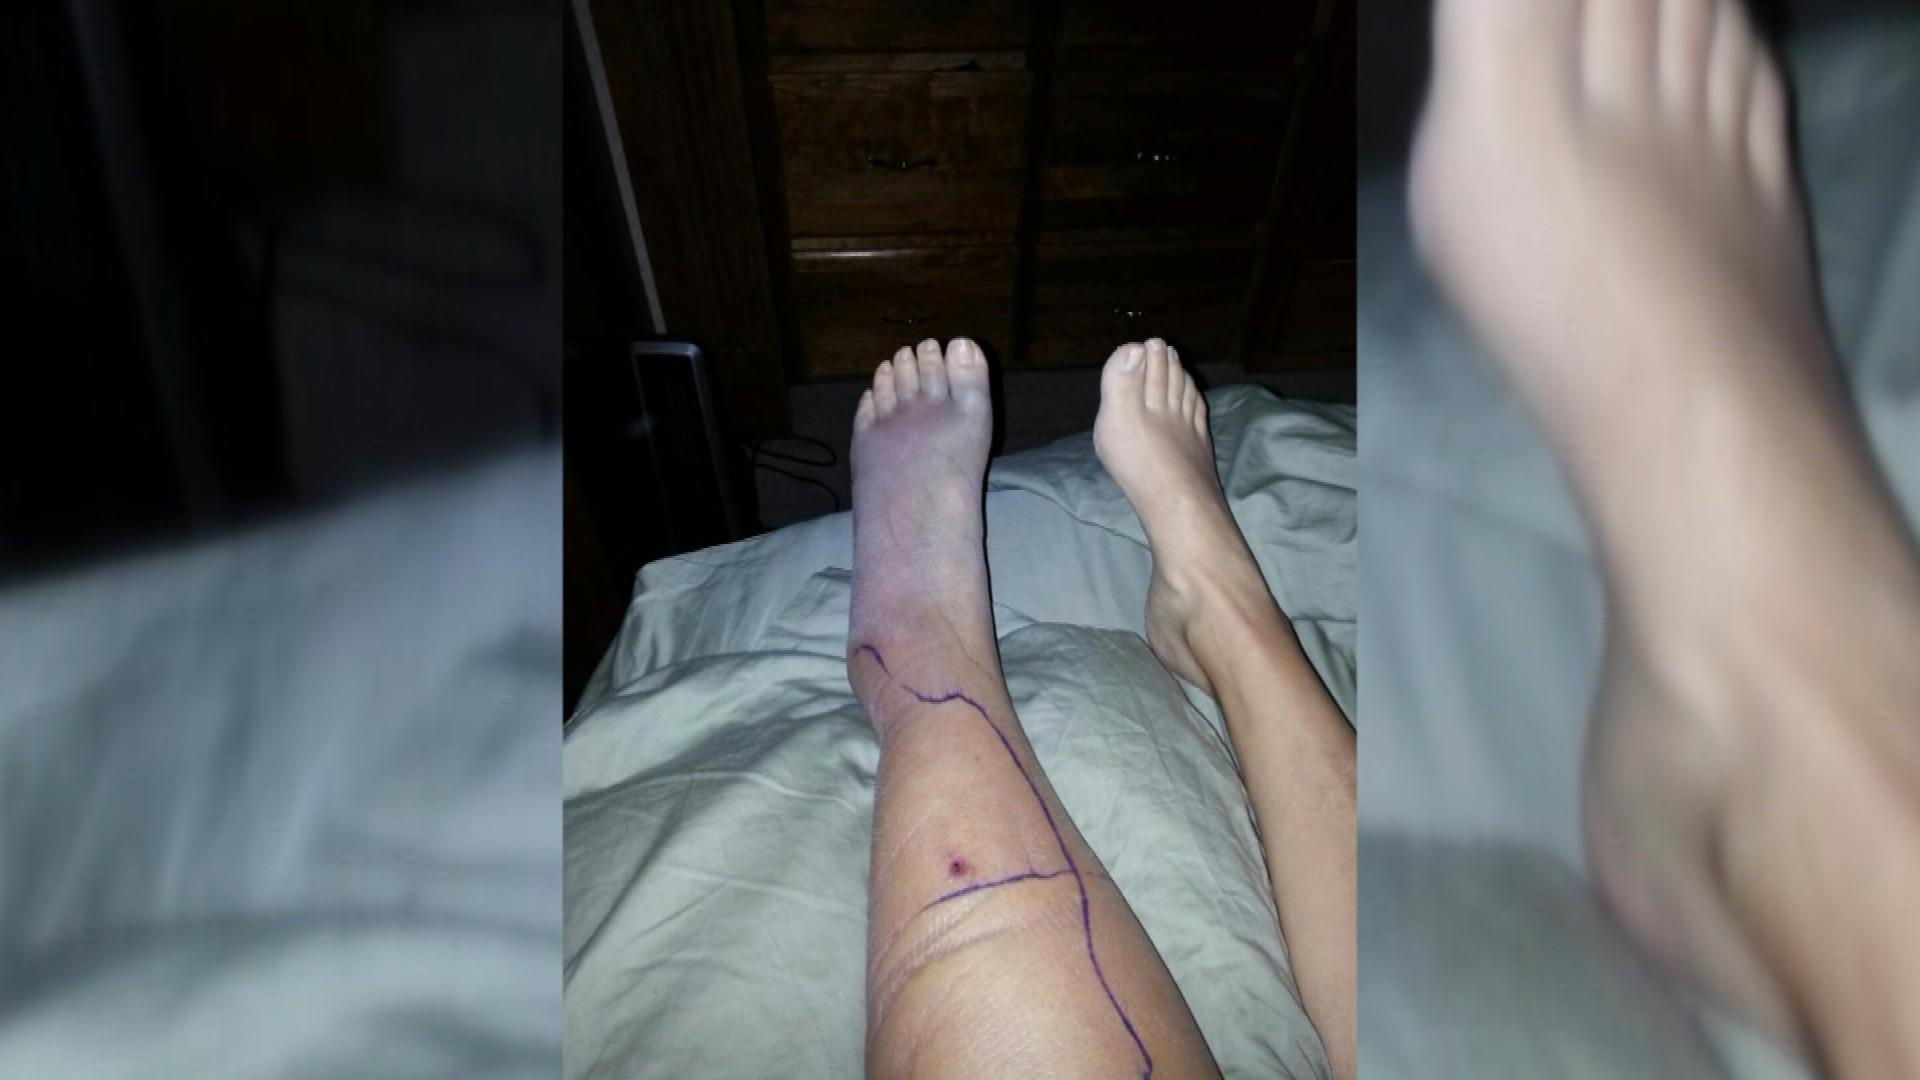 Kim Rees's leg after the bite (credit: CBS)